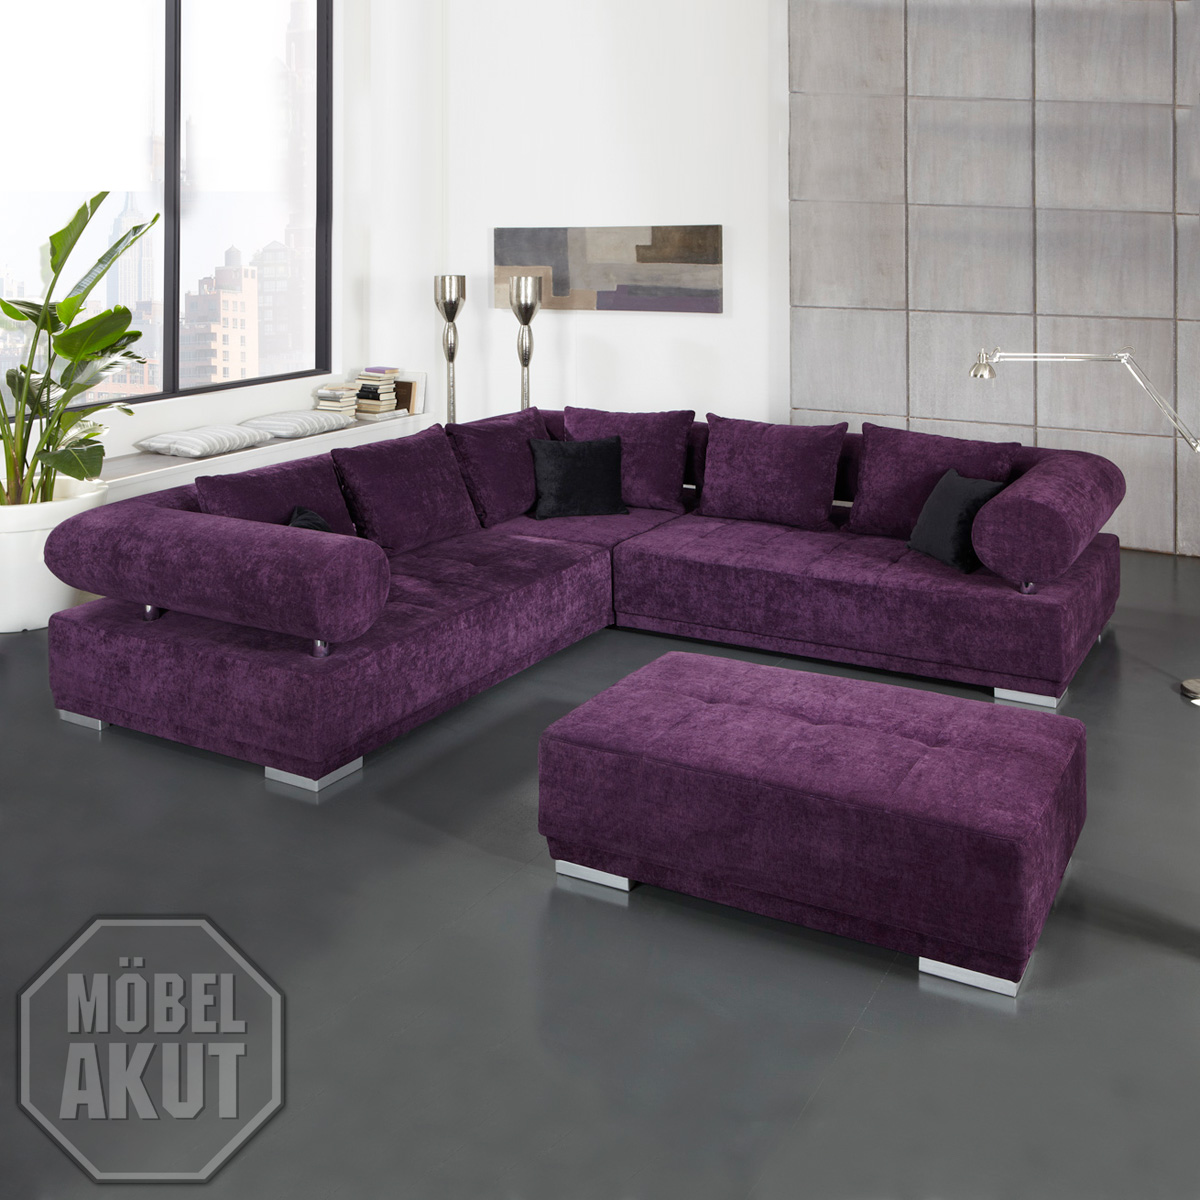 wohnlandschaft frog sofa megasofa bigsofa in lila. Black Bedroom Furniture Sets. Home Design Ideas